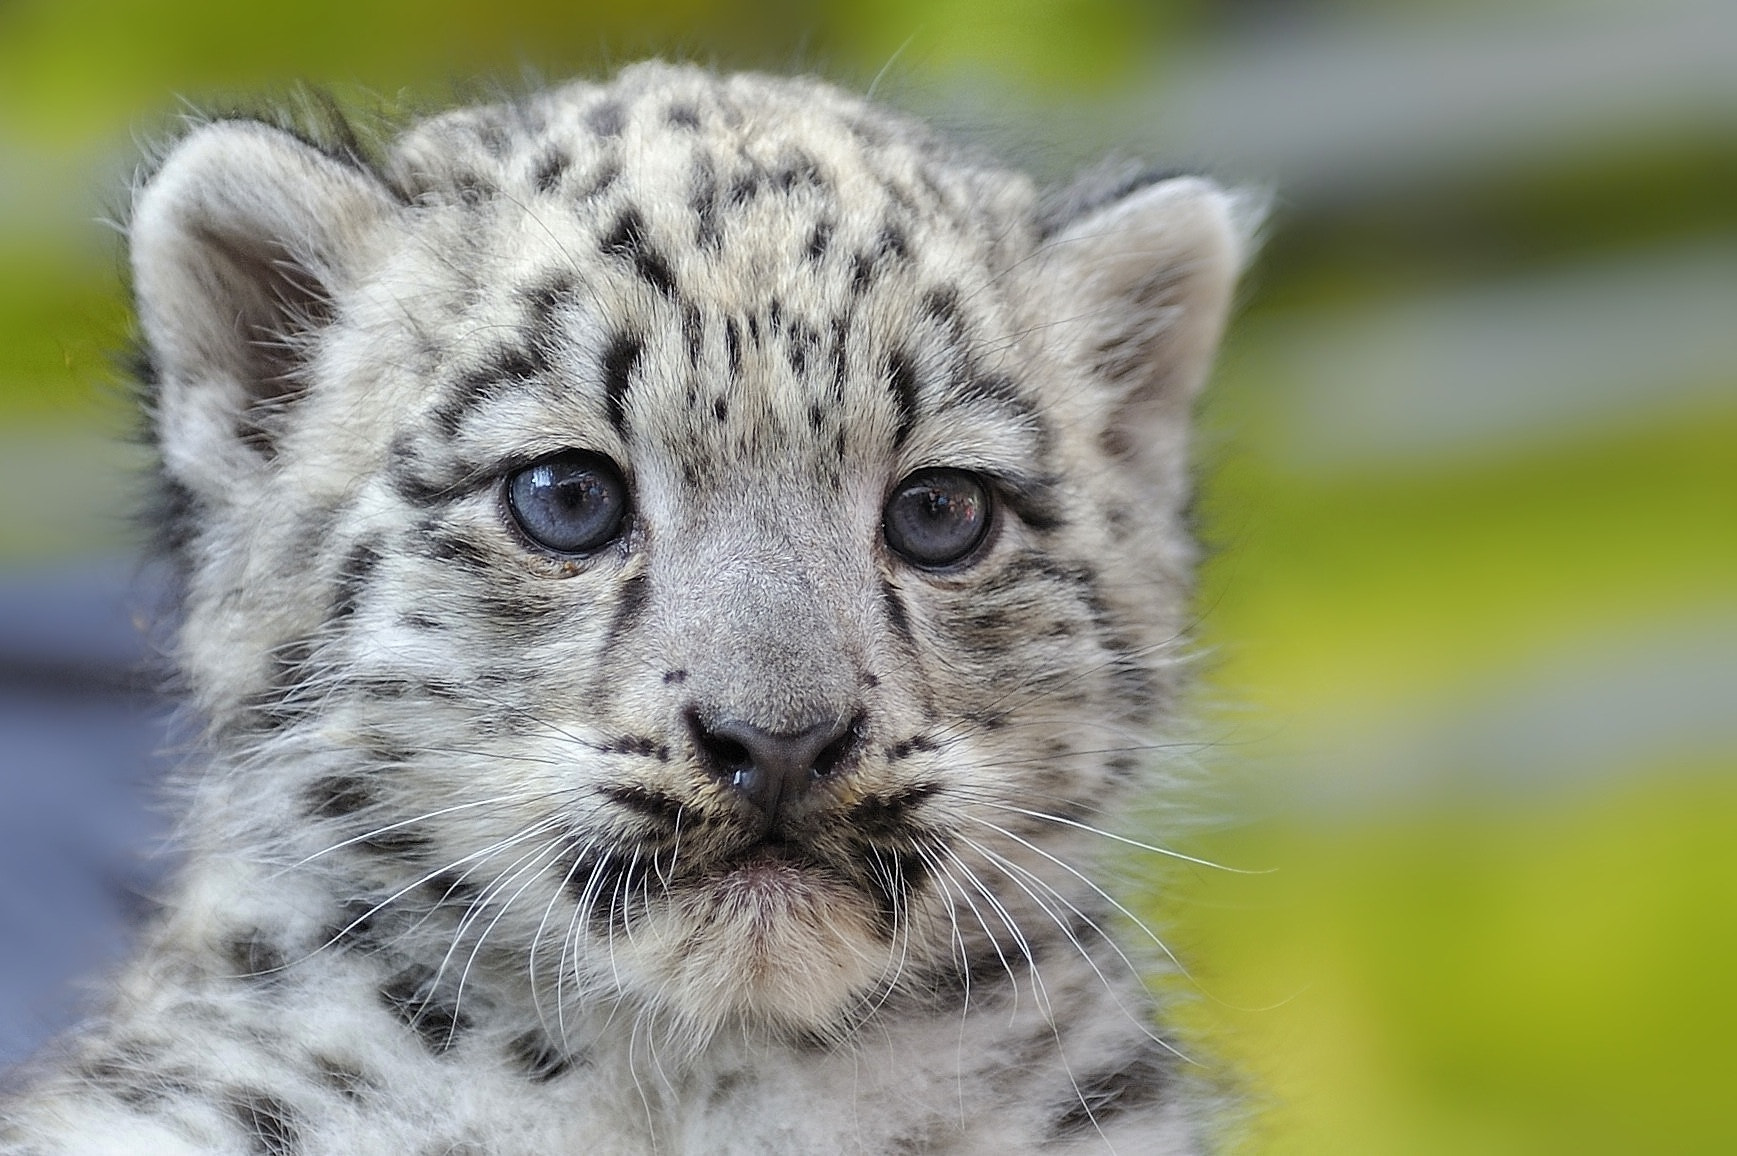 Photograph Snow Leopard - 6 weeks old by Josef Gelernter on 500px